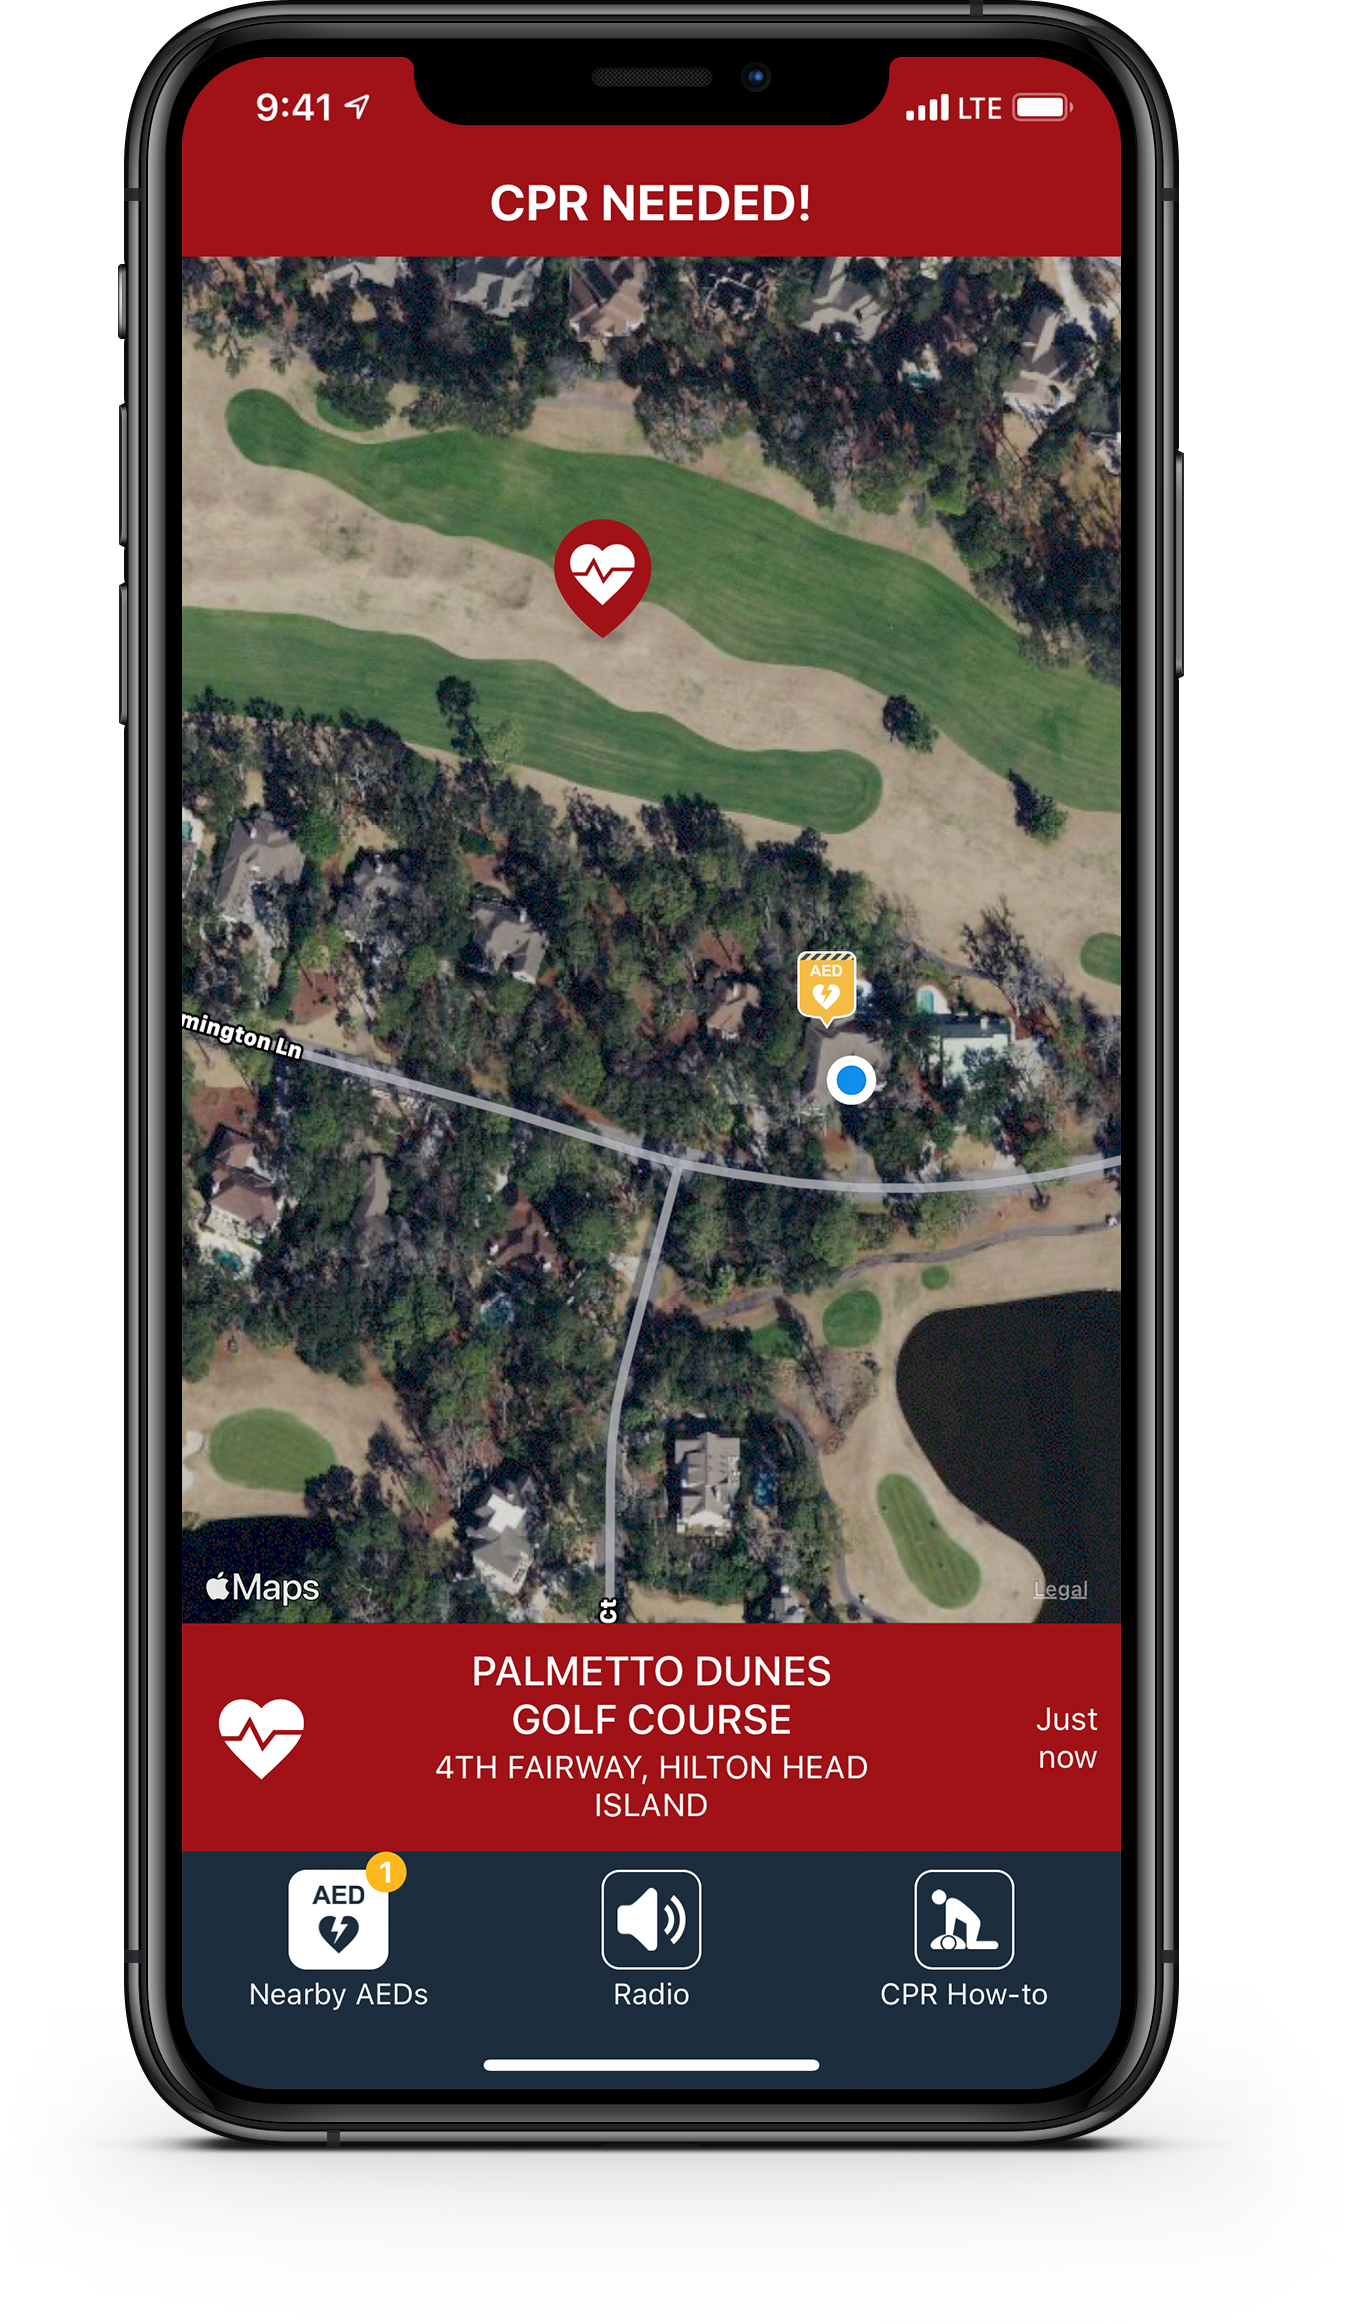 PulsePoint Respond CPR-needed screen.